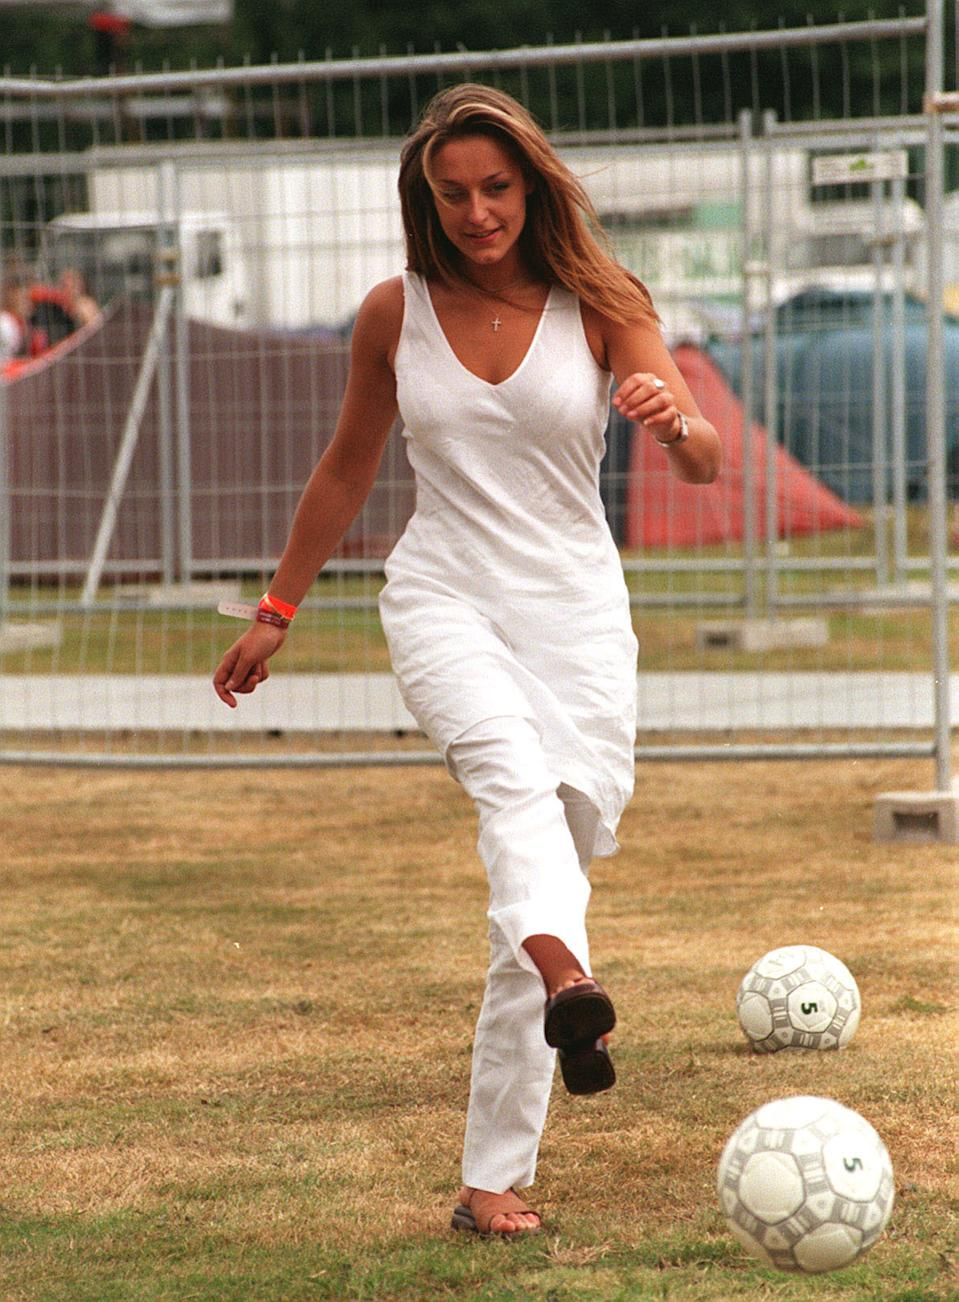 ACTRESS ANN MARIE DAVIES OF CHANNEL FOUR'S 'BROOKSIDE' AT THE V98 CELEBRITY FOOTBALL MATCH IN CHELMSFORD, ESSEX.